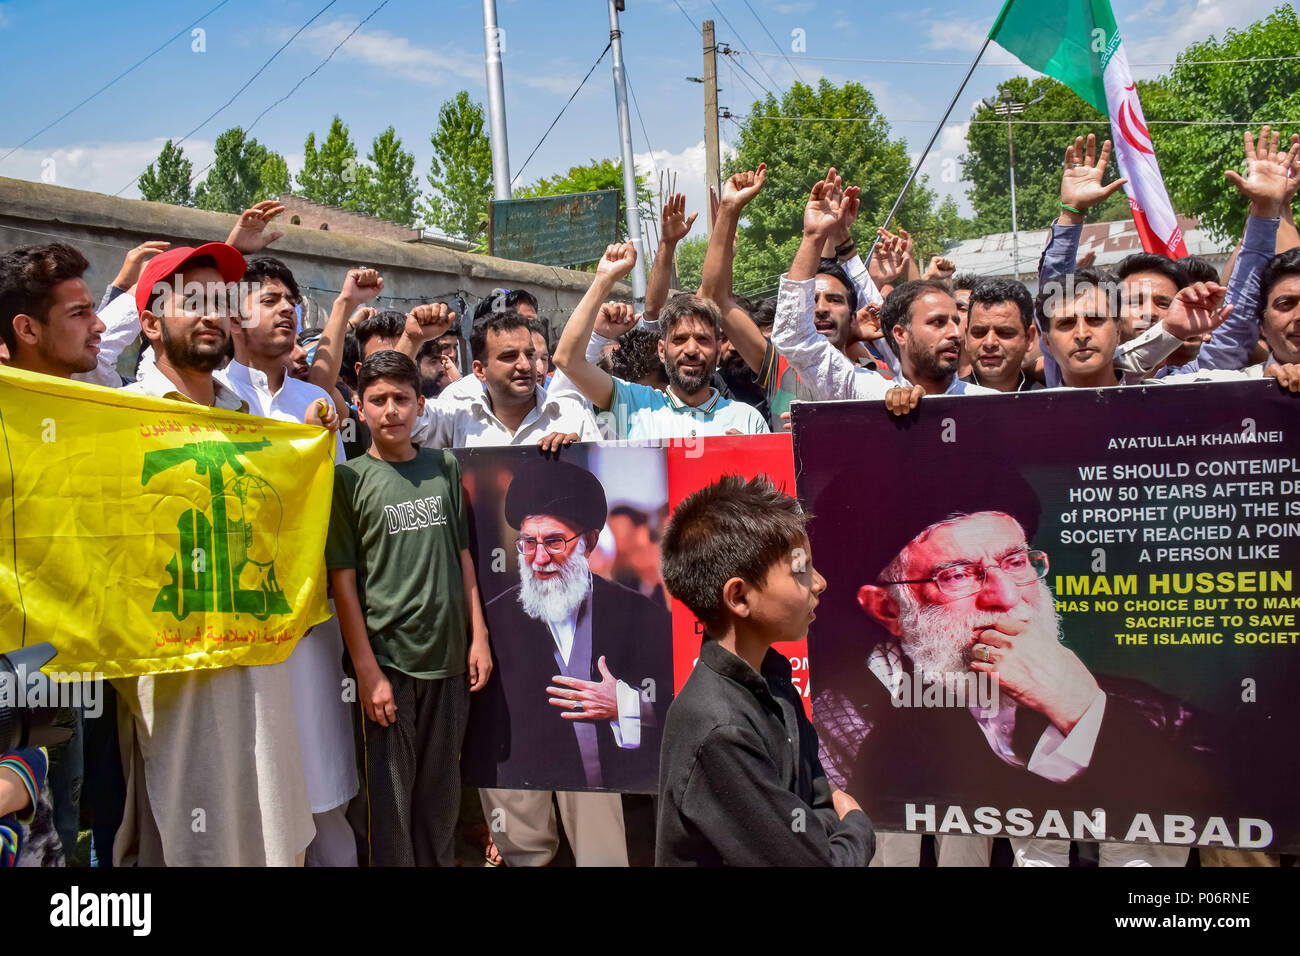 June 8, 2018 - Srinagar, Jammu & Kashmir, India - Kashmiri Shiite Muslims hold anti Israeli, anti Indian and anti American placards, shout Pro Palestinian And Pro Freedom slogans during an annual rally marking Al-Quds Day.Al-Qud is the Arabic name for Jerusalem. Quds day is marked by Muslims all over the world on the last Friday of Ramadan that was initiated by Islamic republic of Iran in 1979 to express the solidarity towards Palestinians and to condemn Israel. Credit: Abbas Idrees/SOPA Images/ZUMA Wire/Alamy Live News - Stock Image